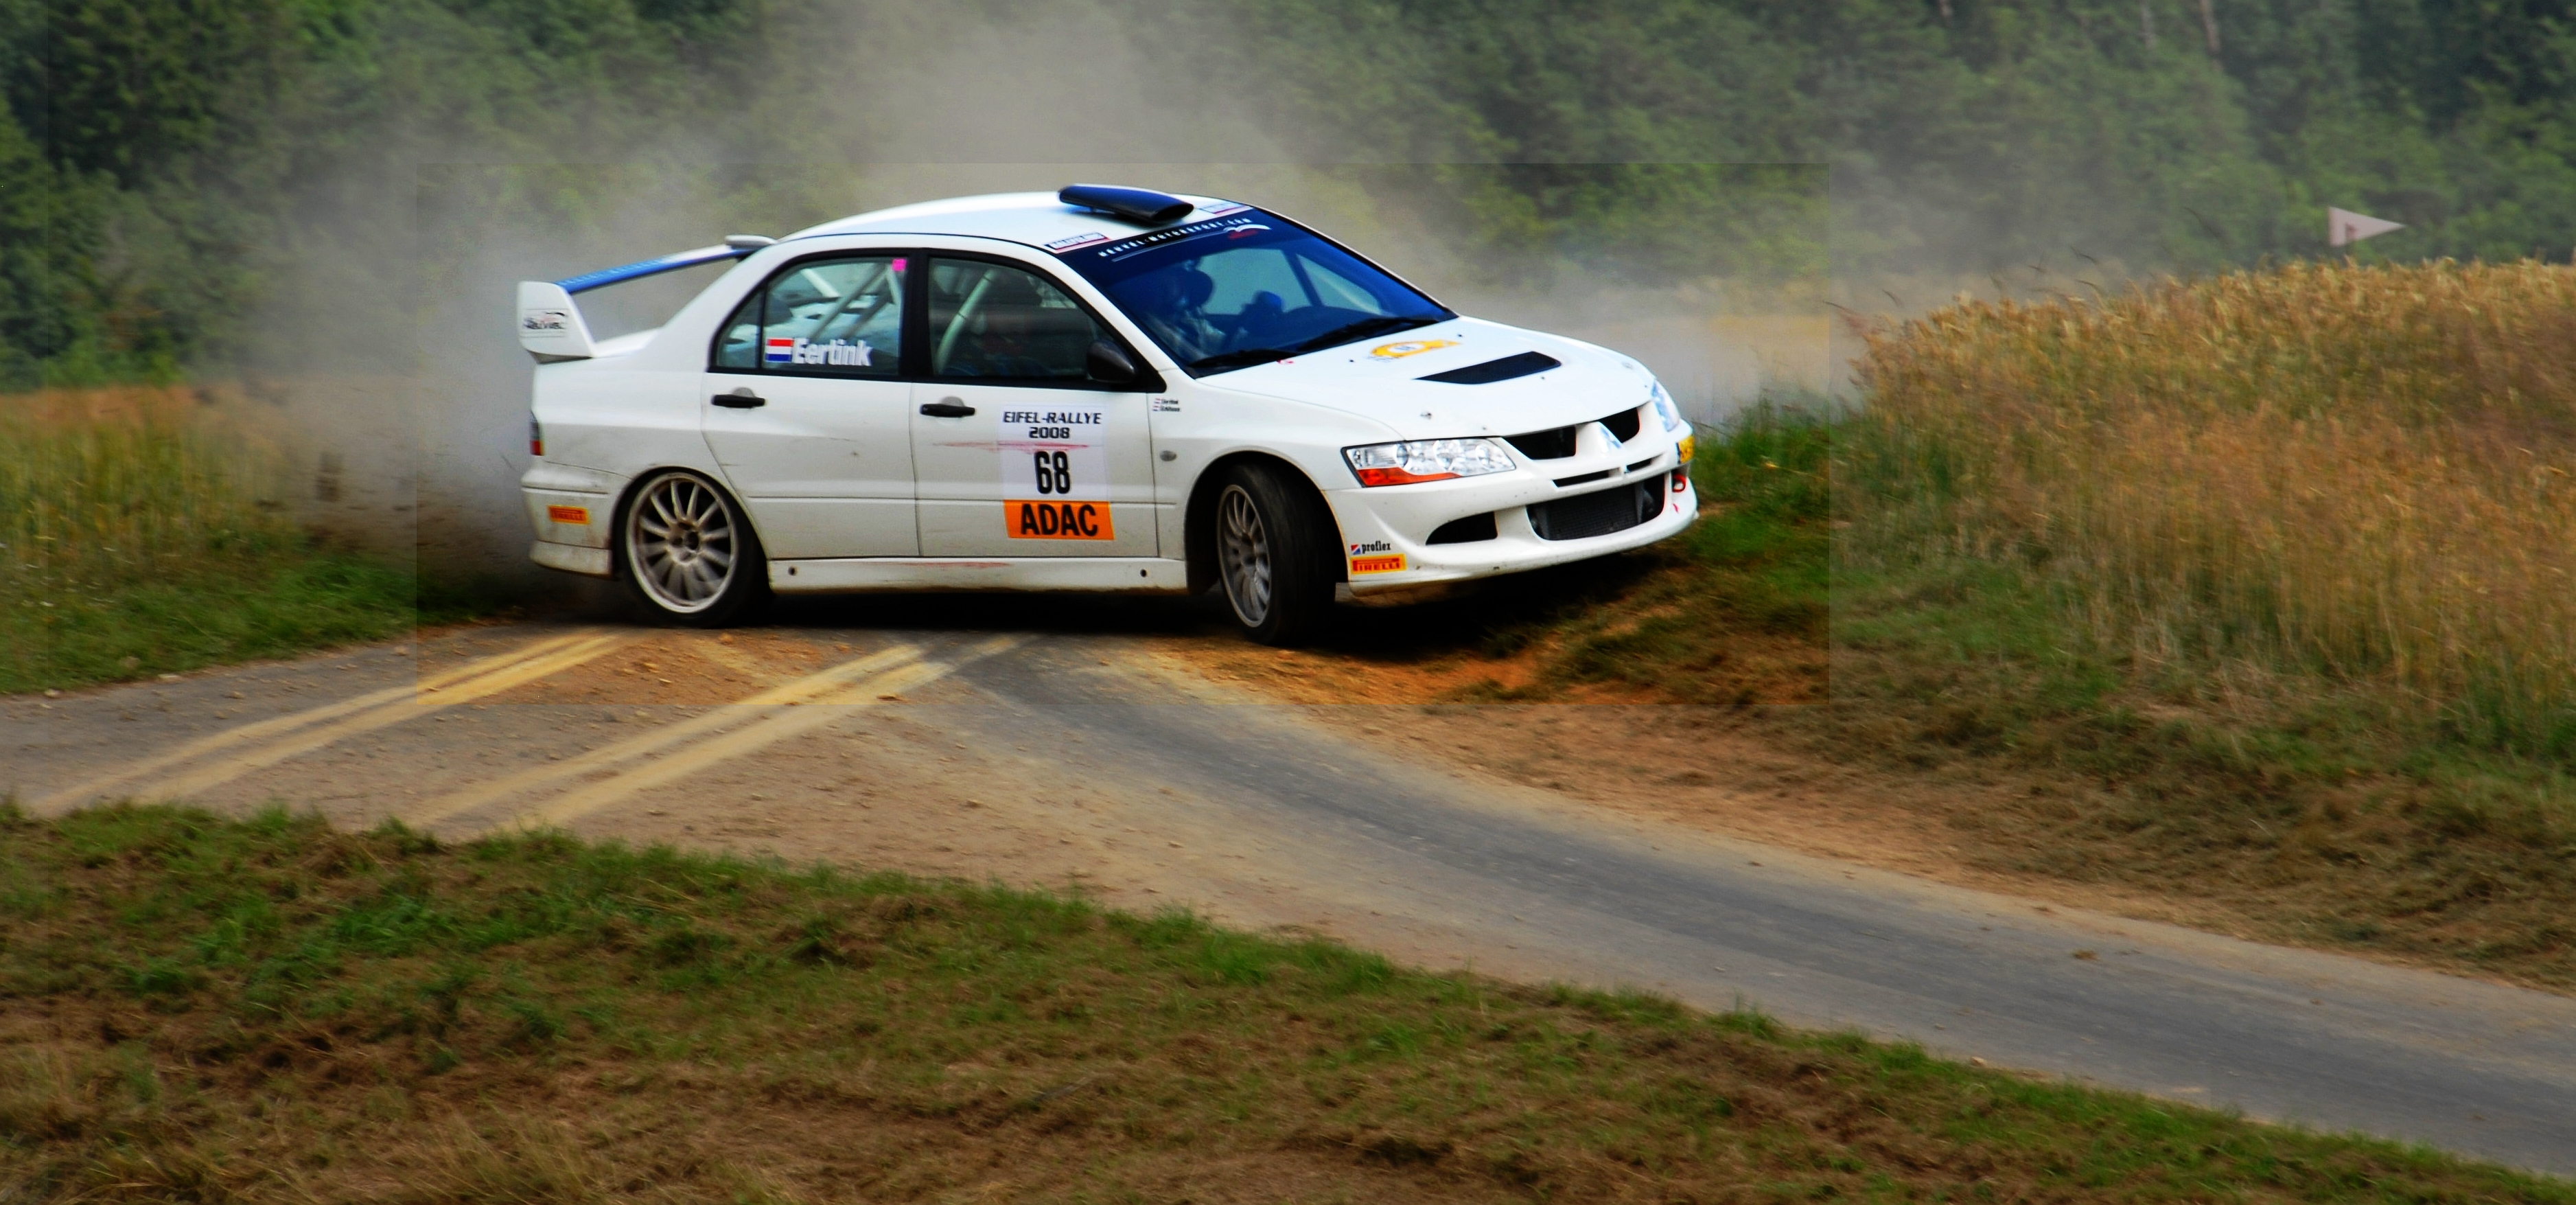 cars rally vehicles mitsubishi HD Wallpaper